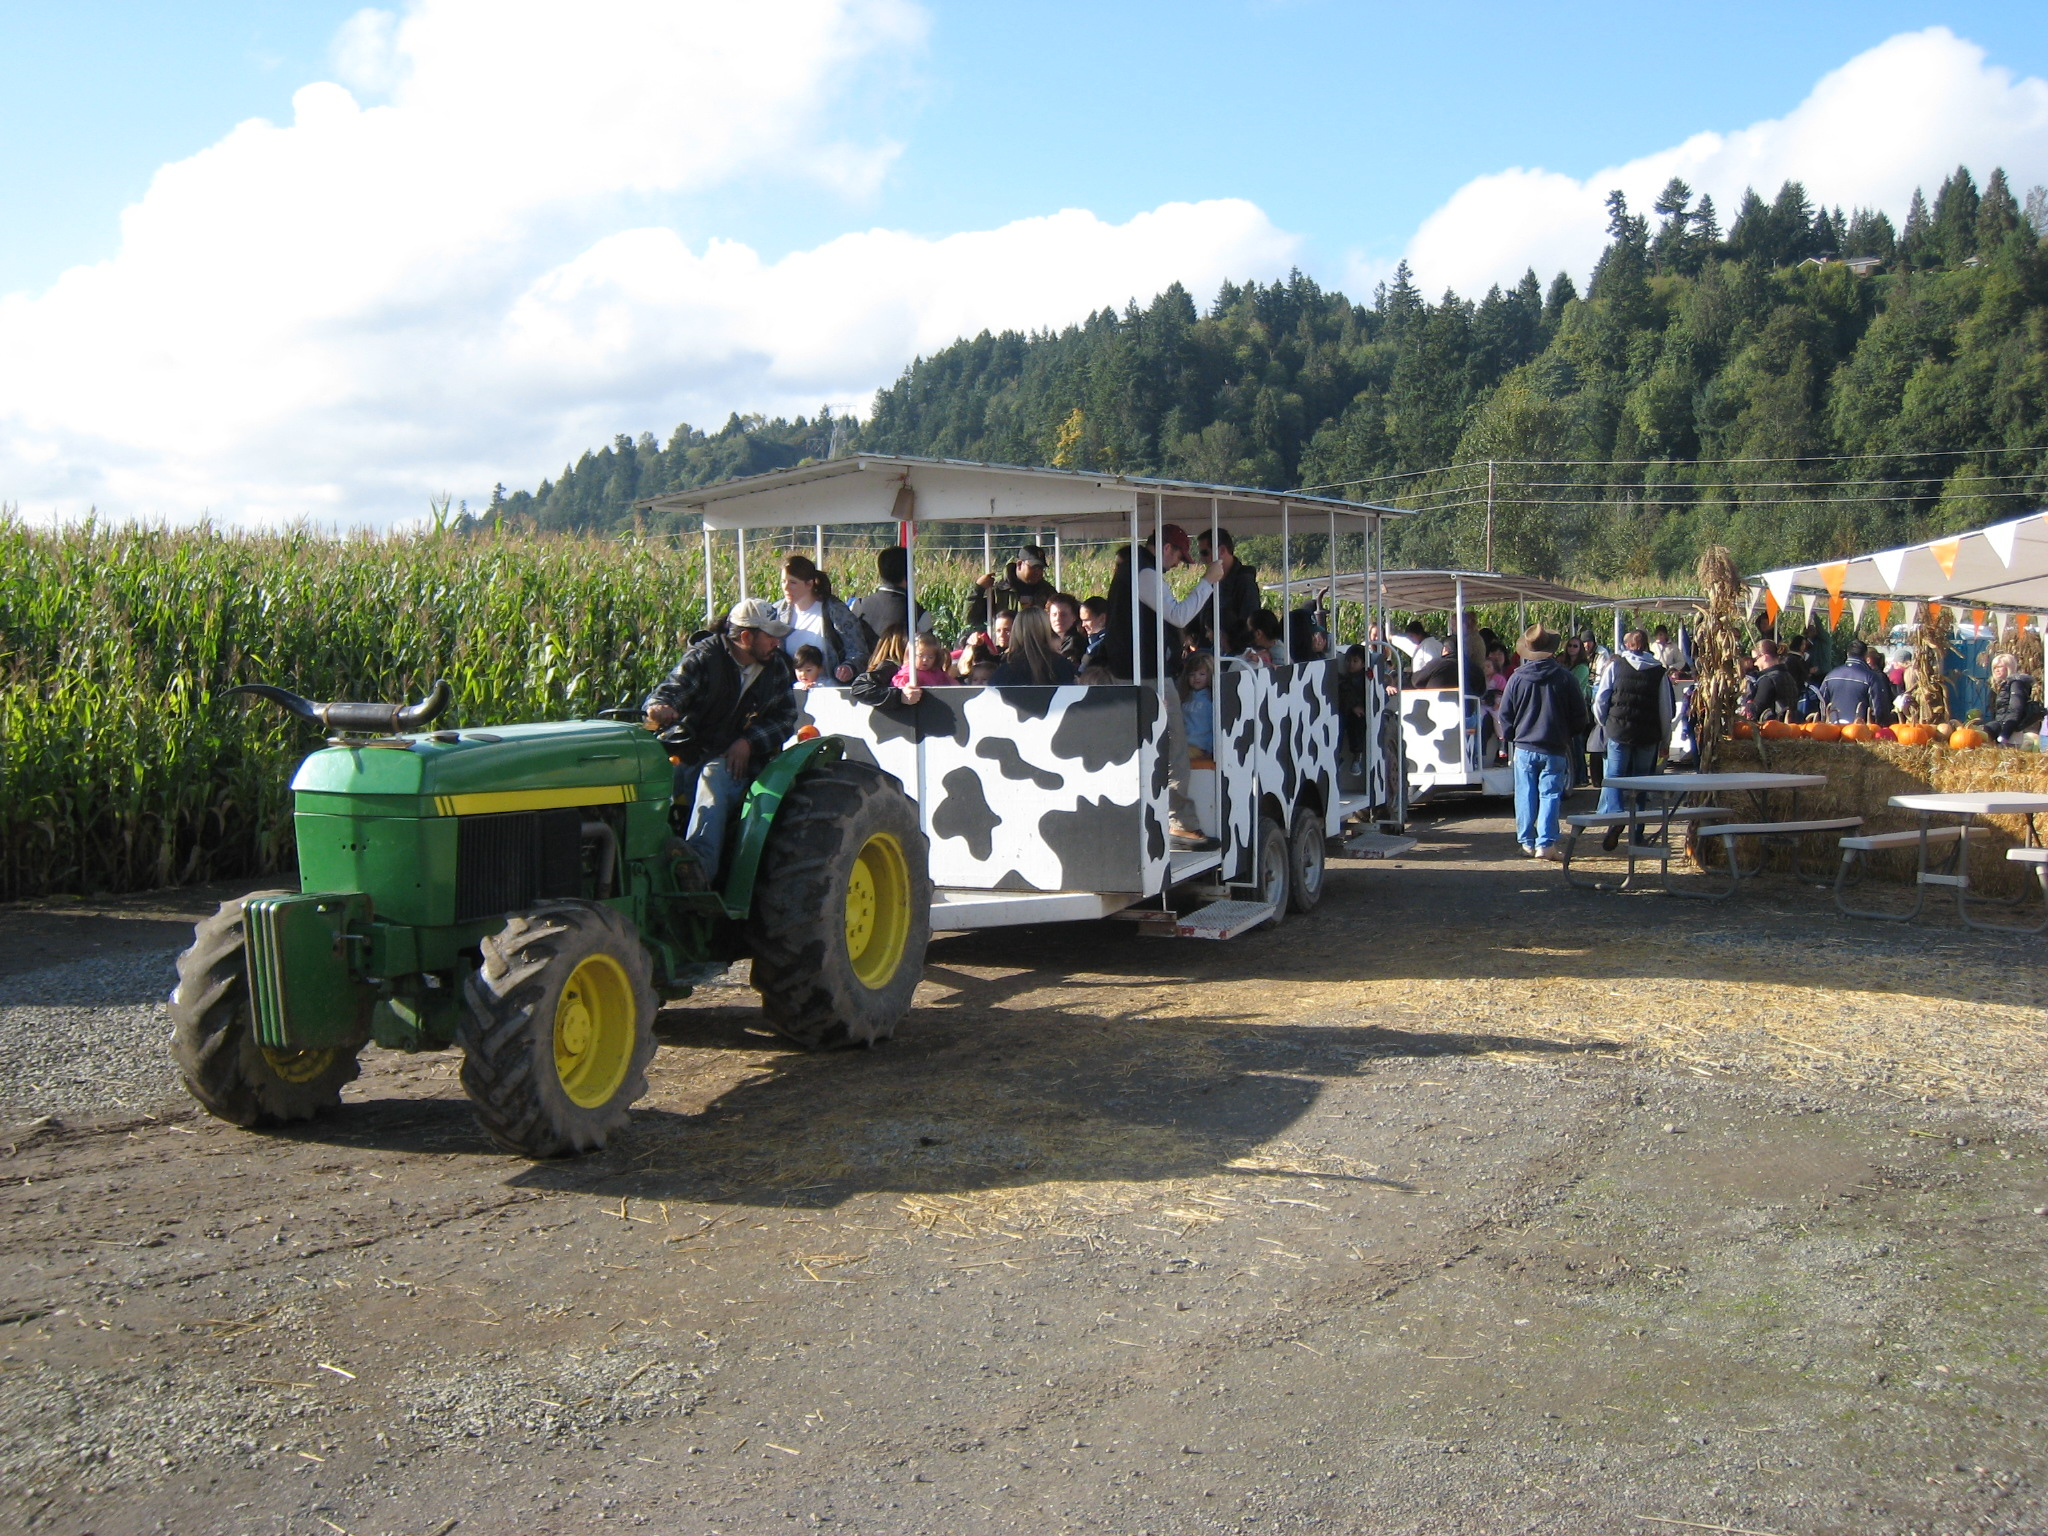 Spooner Farms Harvest Festival Farm Tours - Puyallup, WA Pumpkin Patch